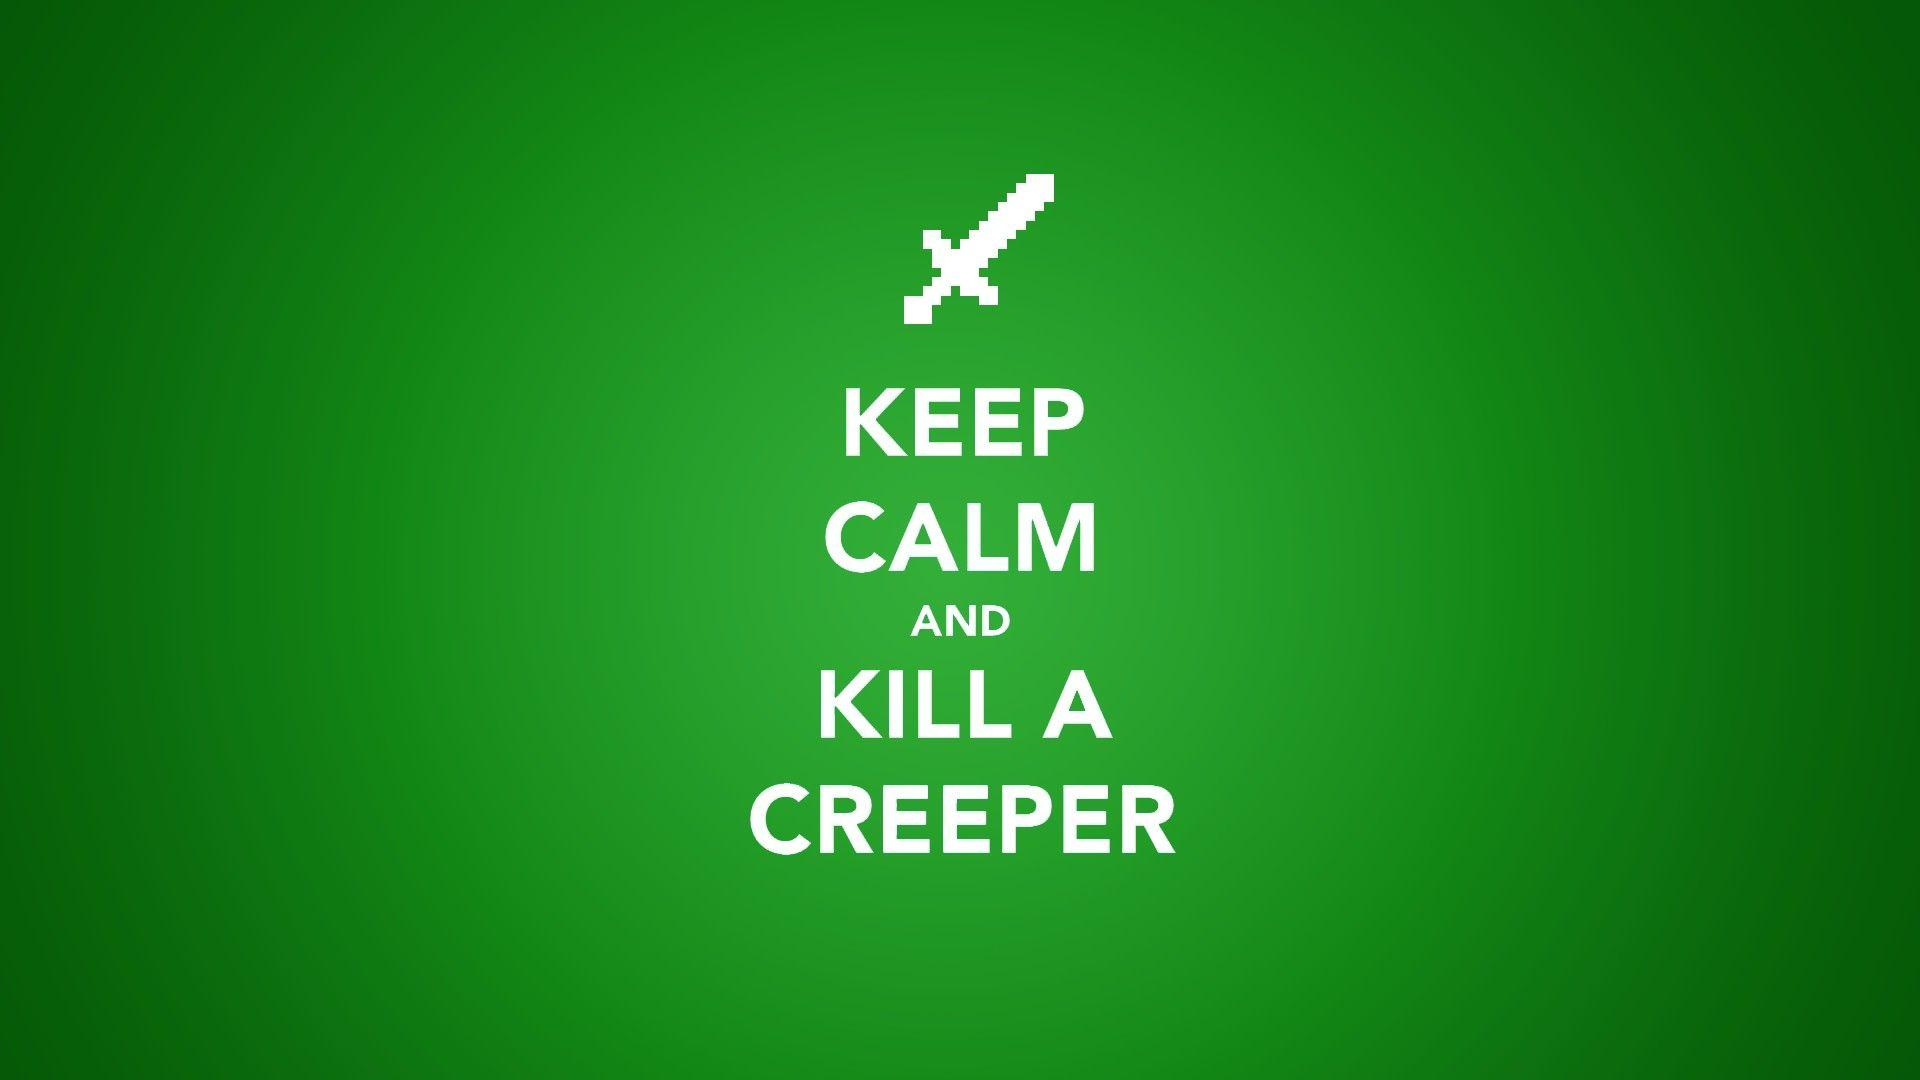 Keep Calm Minecraft Quotes Backgrounds HD Wallpapers Keep Calm